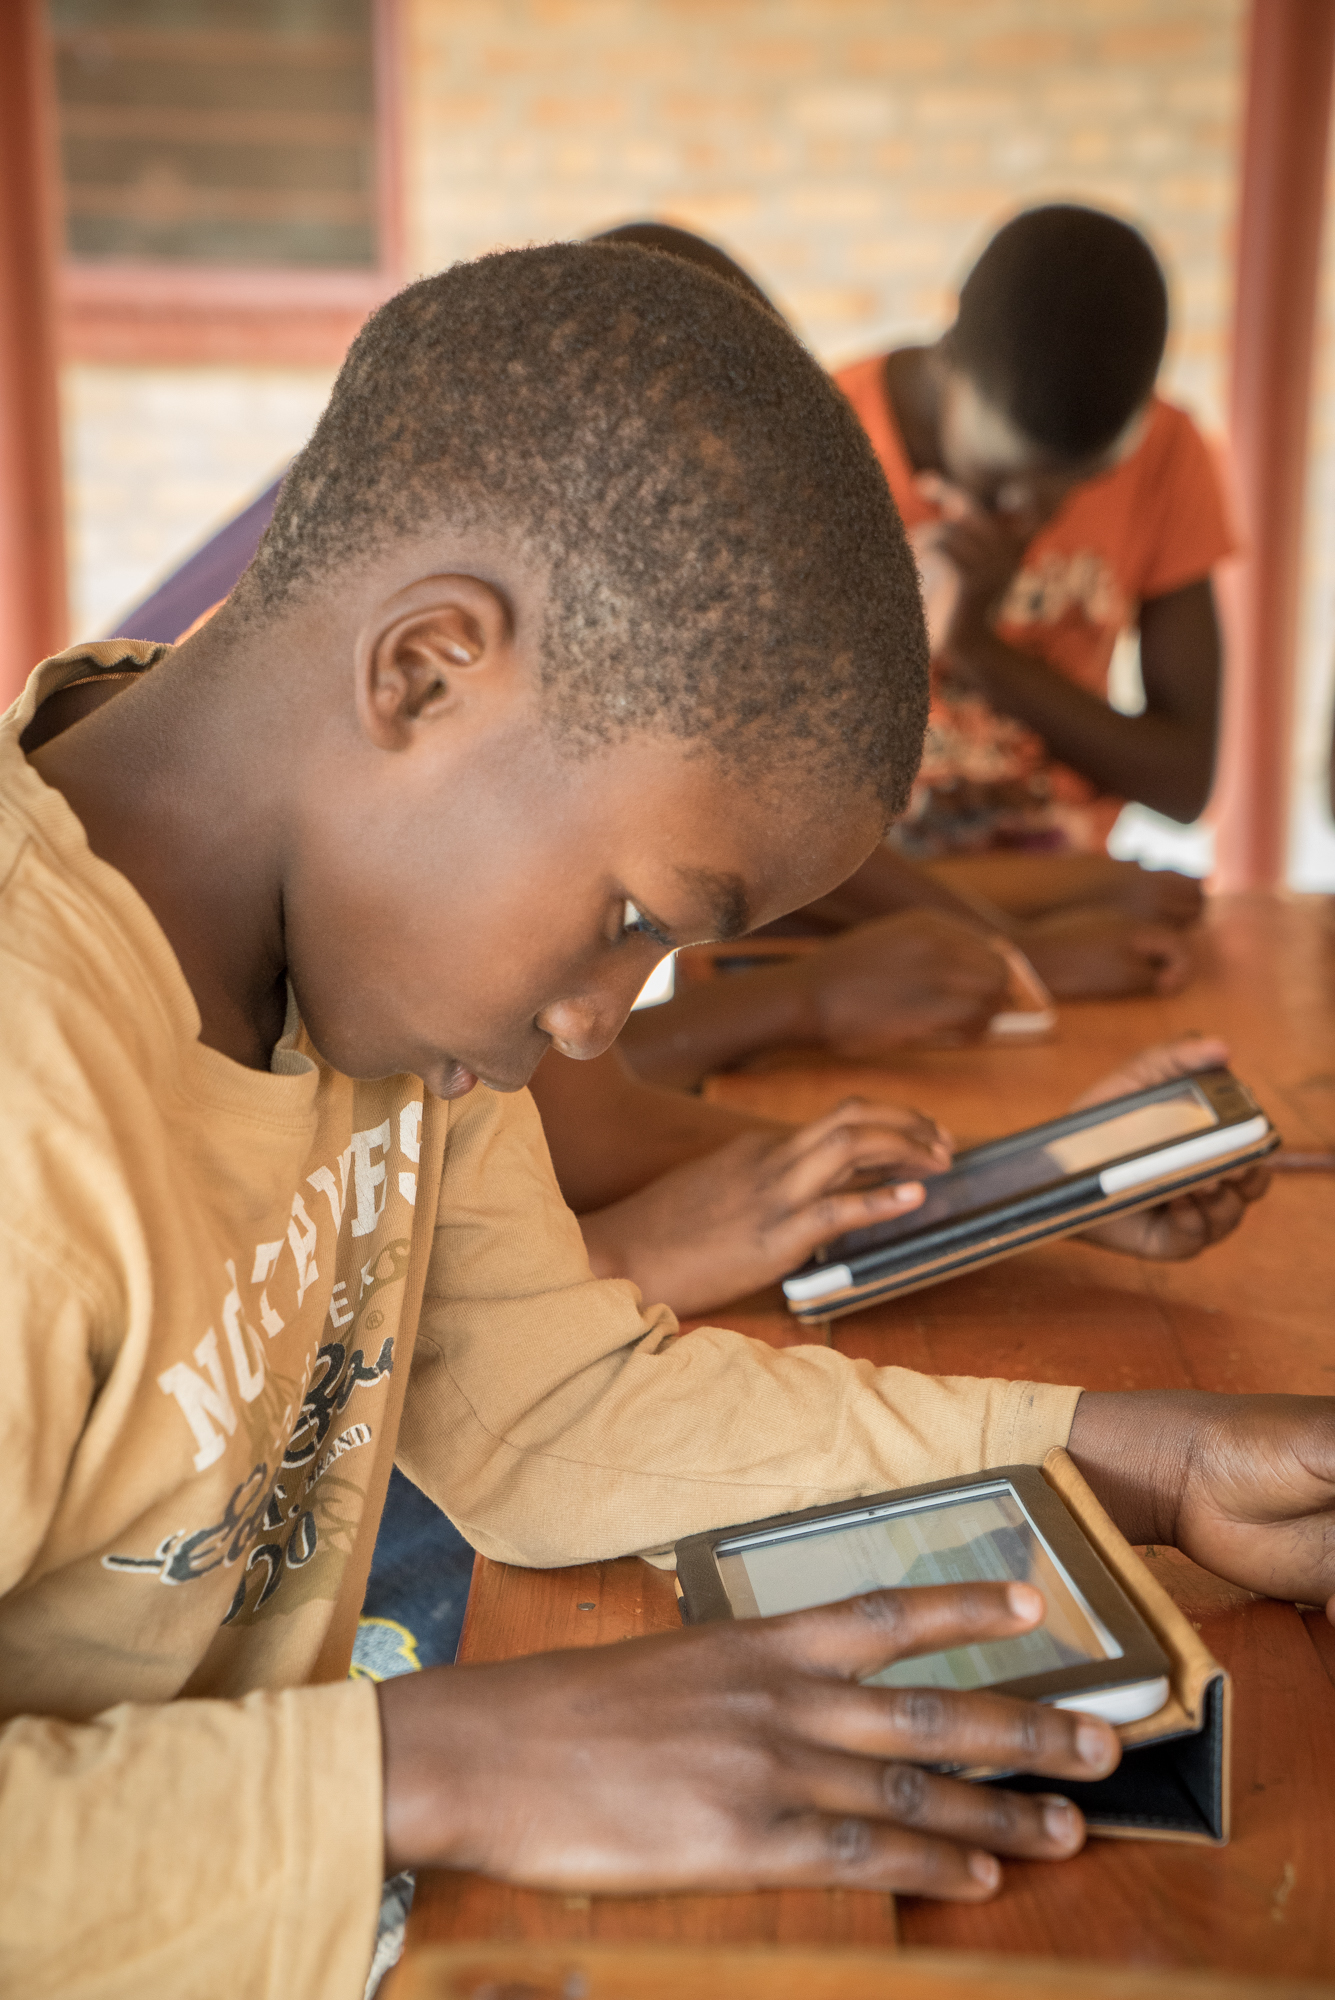 Prosper, 11years old, interacting with KA Lite on a tablet, in Zambia.